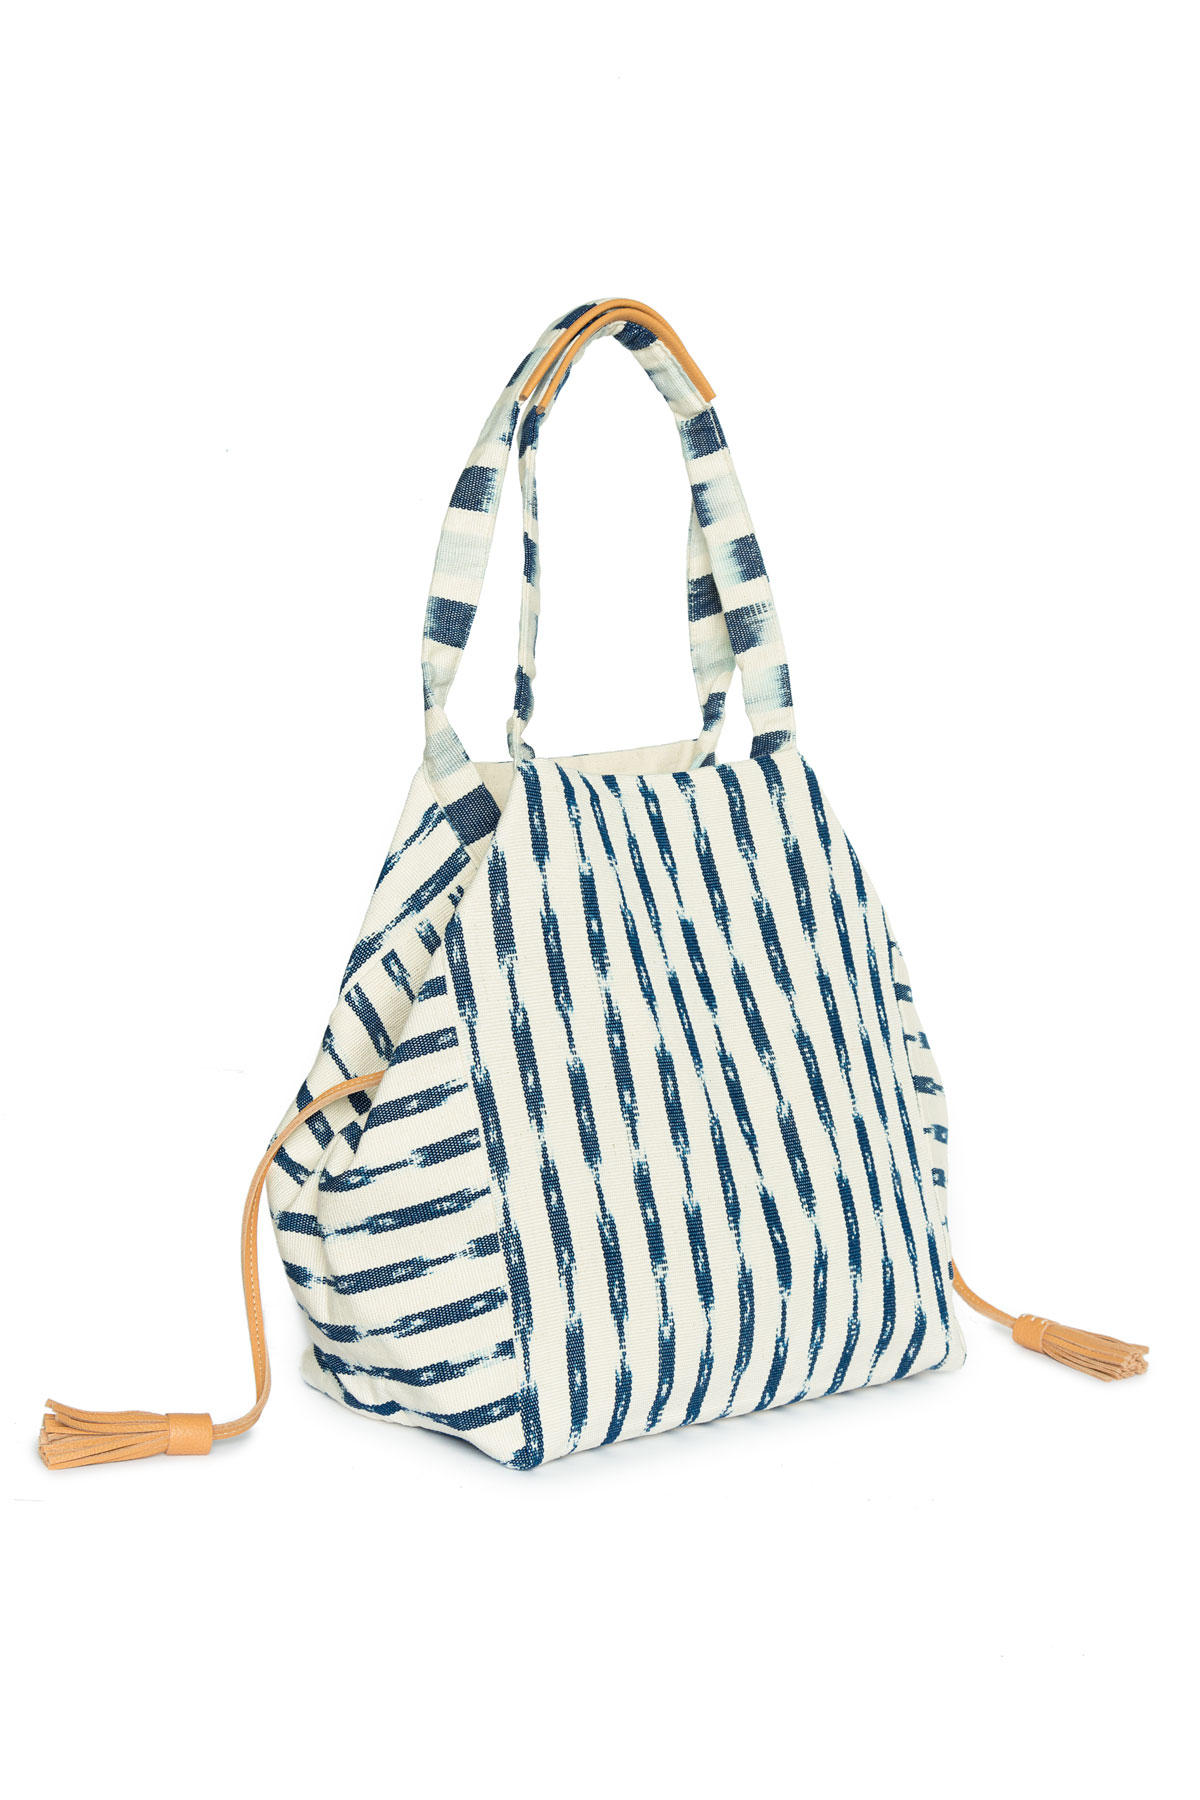 RosaI Ikat Leather Tassel Fabric Oversized Tote - Blue/White 2